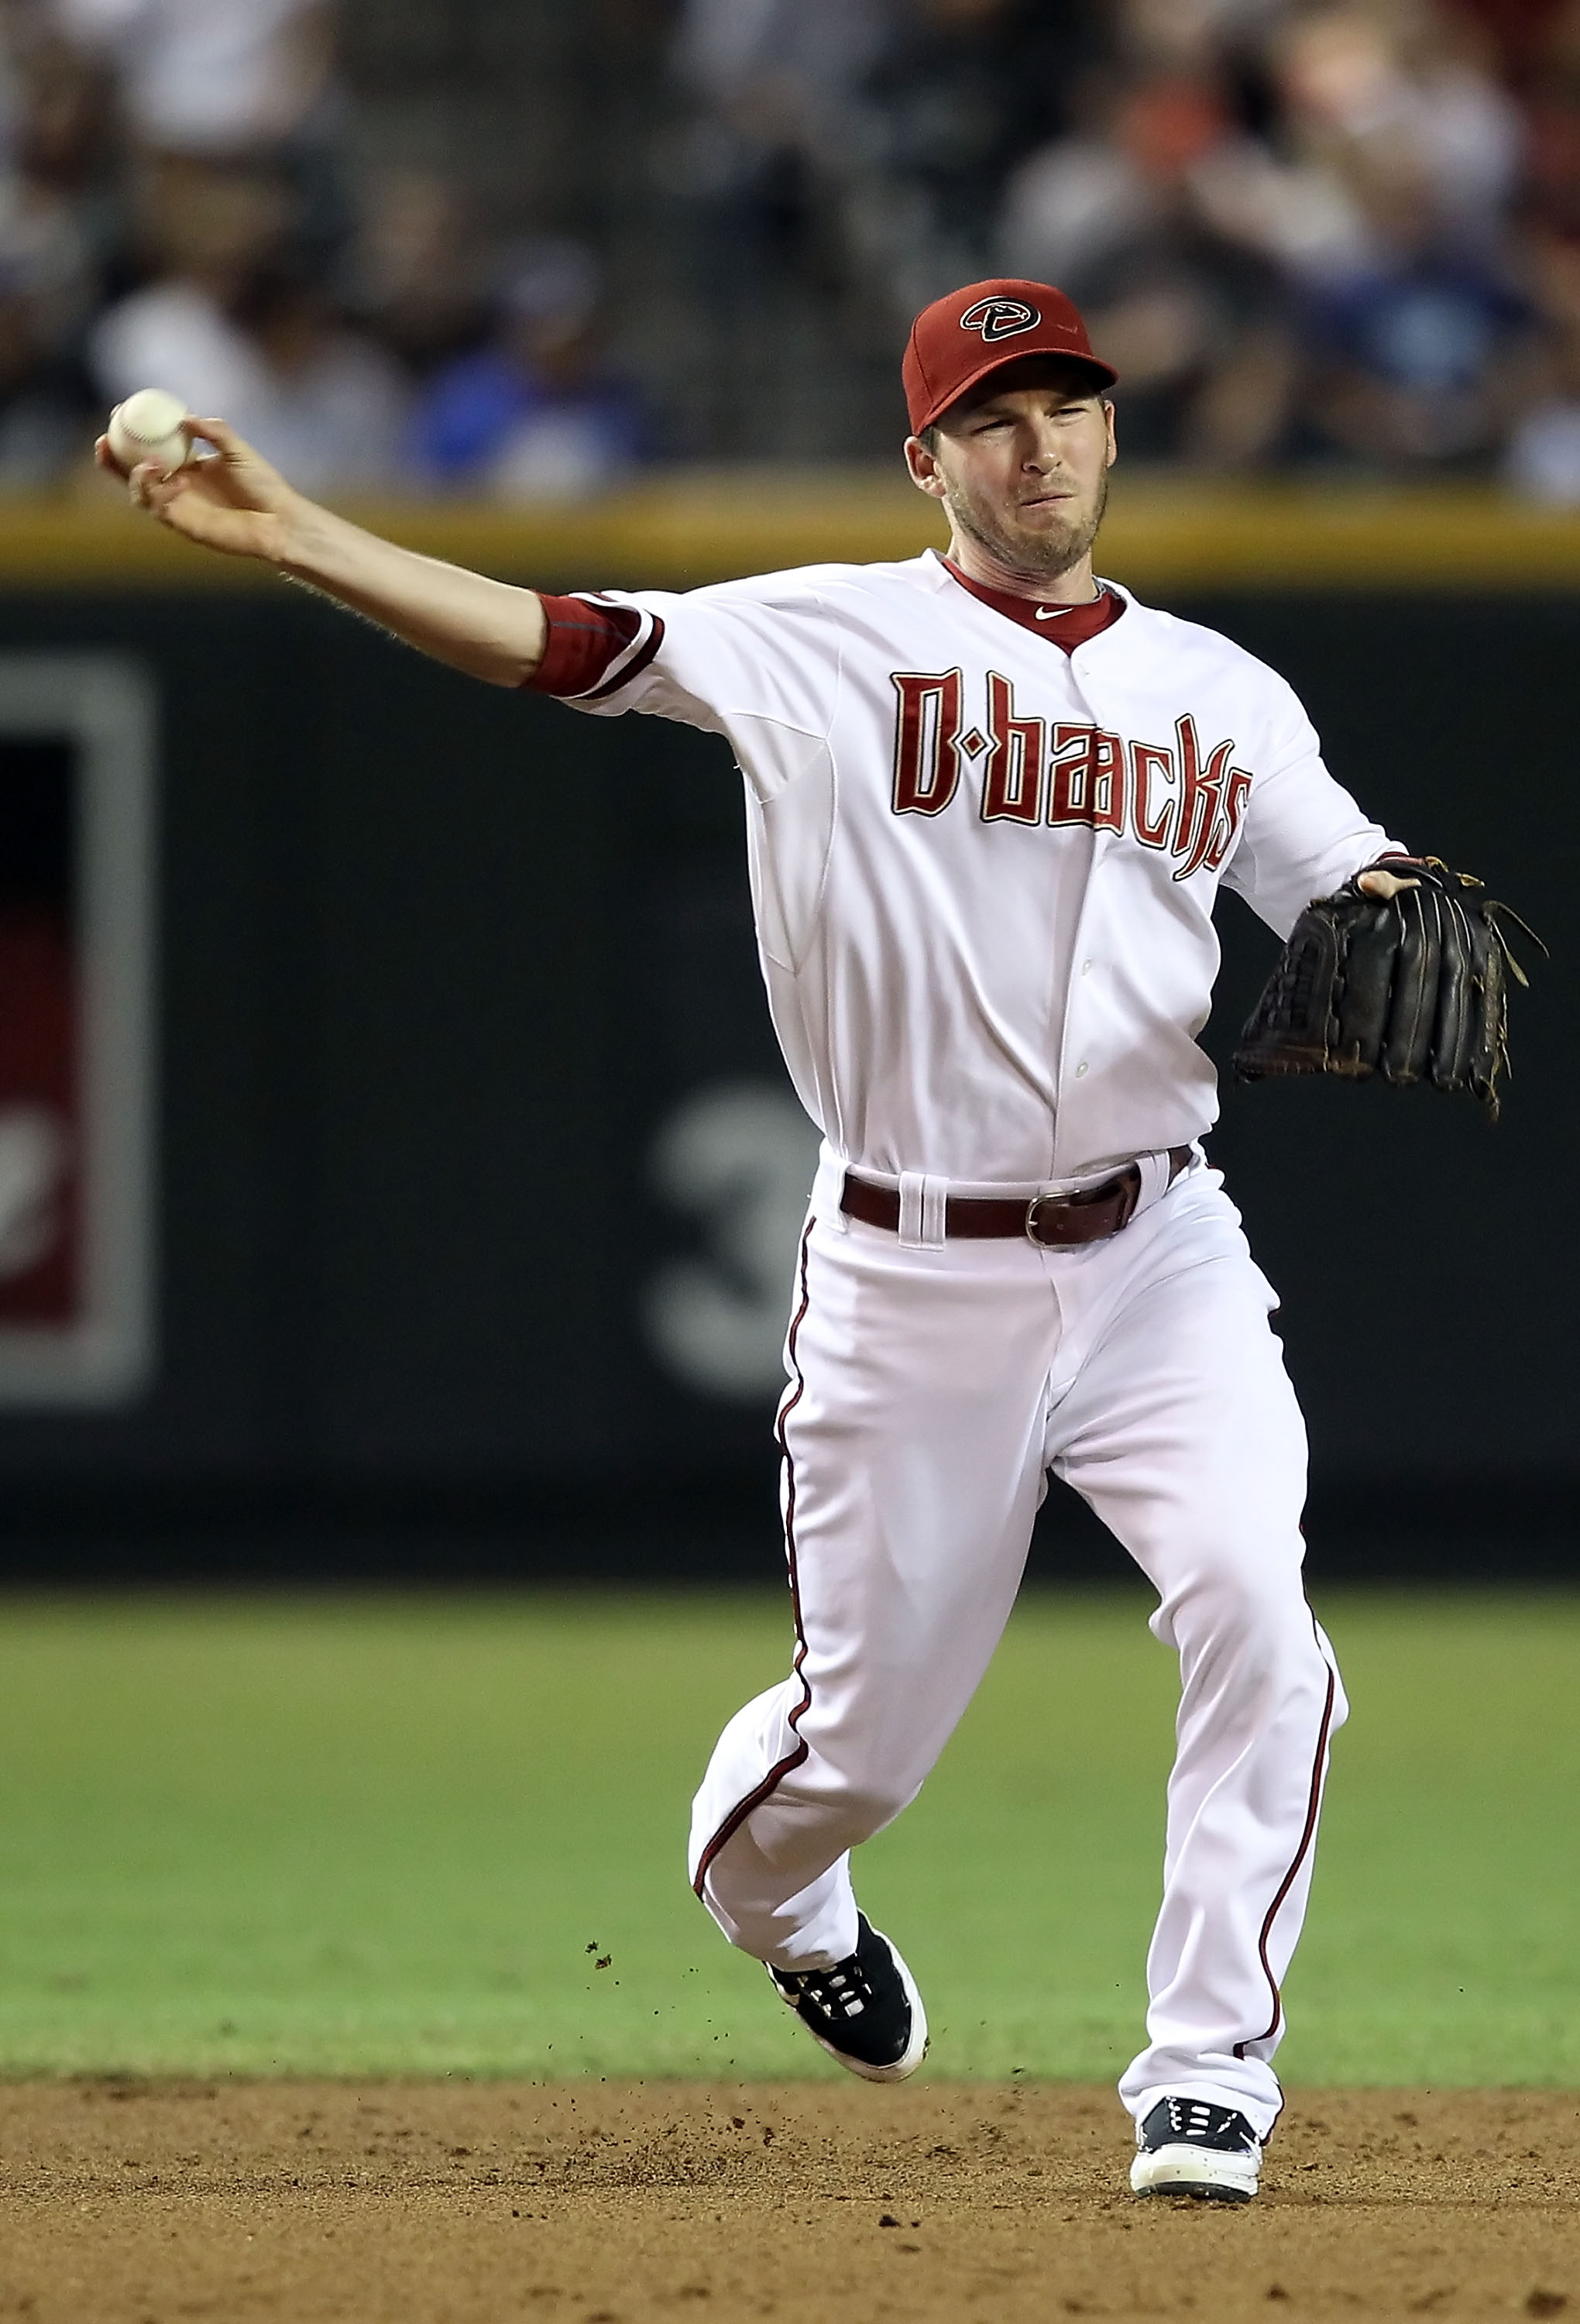 PHOENIX - SEPTEMBER 24:  Infielder Stephen Drew #6 of the Arizona Diamondbacks fields a ground ball out during the Major League Baseball game against the Los Angeles Dodgers at Chase Field on September 24, 2010 in Phoenix, Arizona.  (Photo by Christian Pe